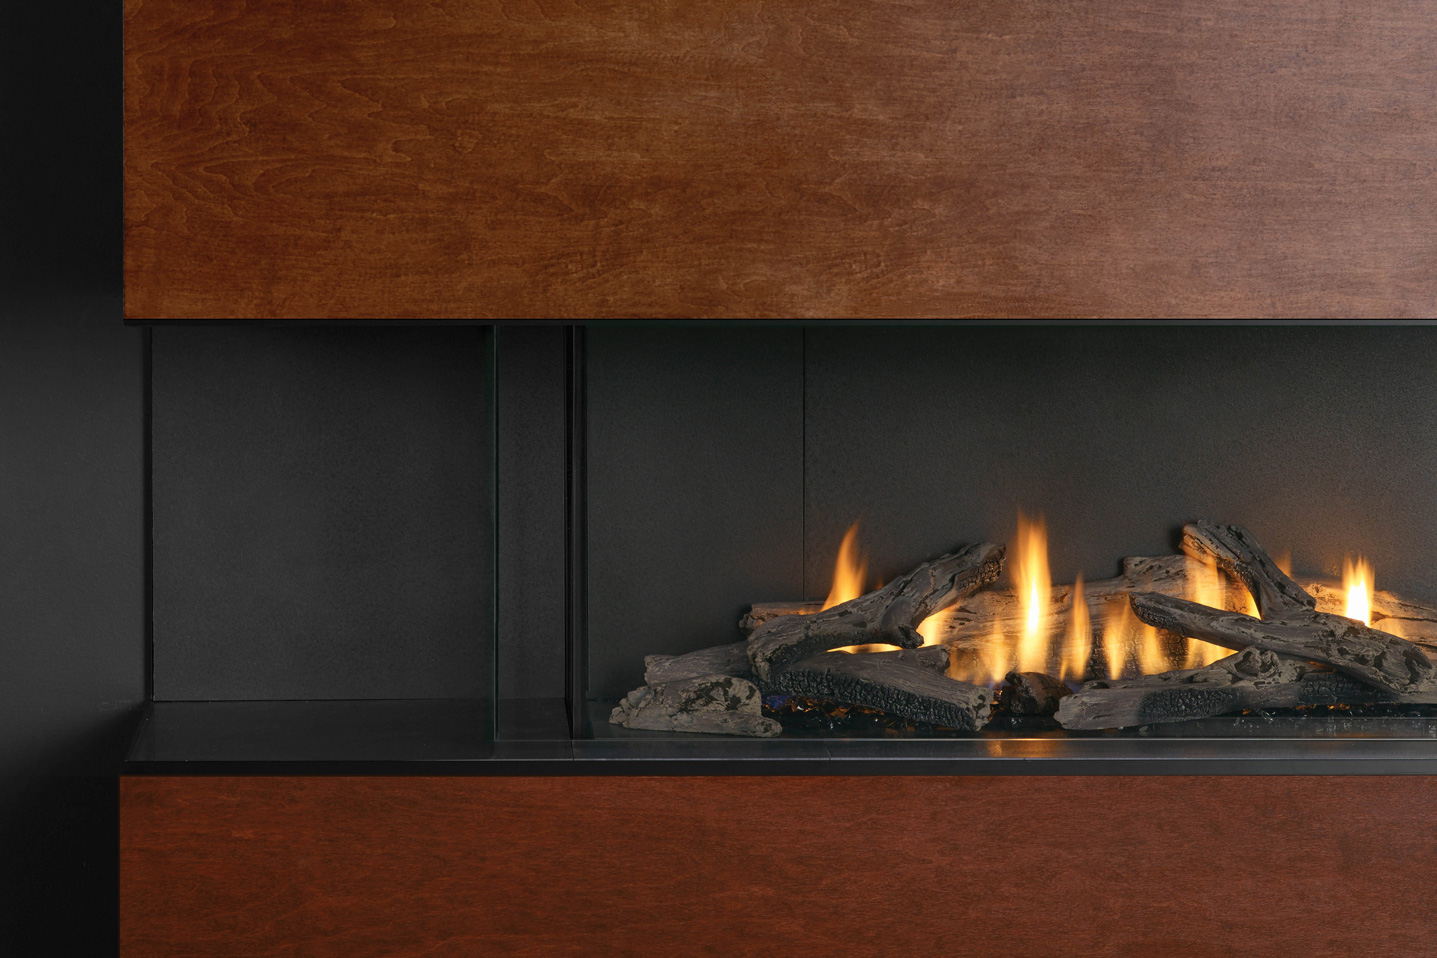 Fireplace-close-up